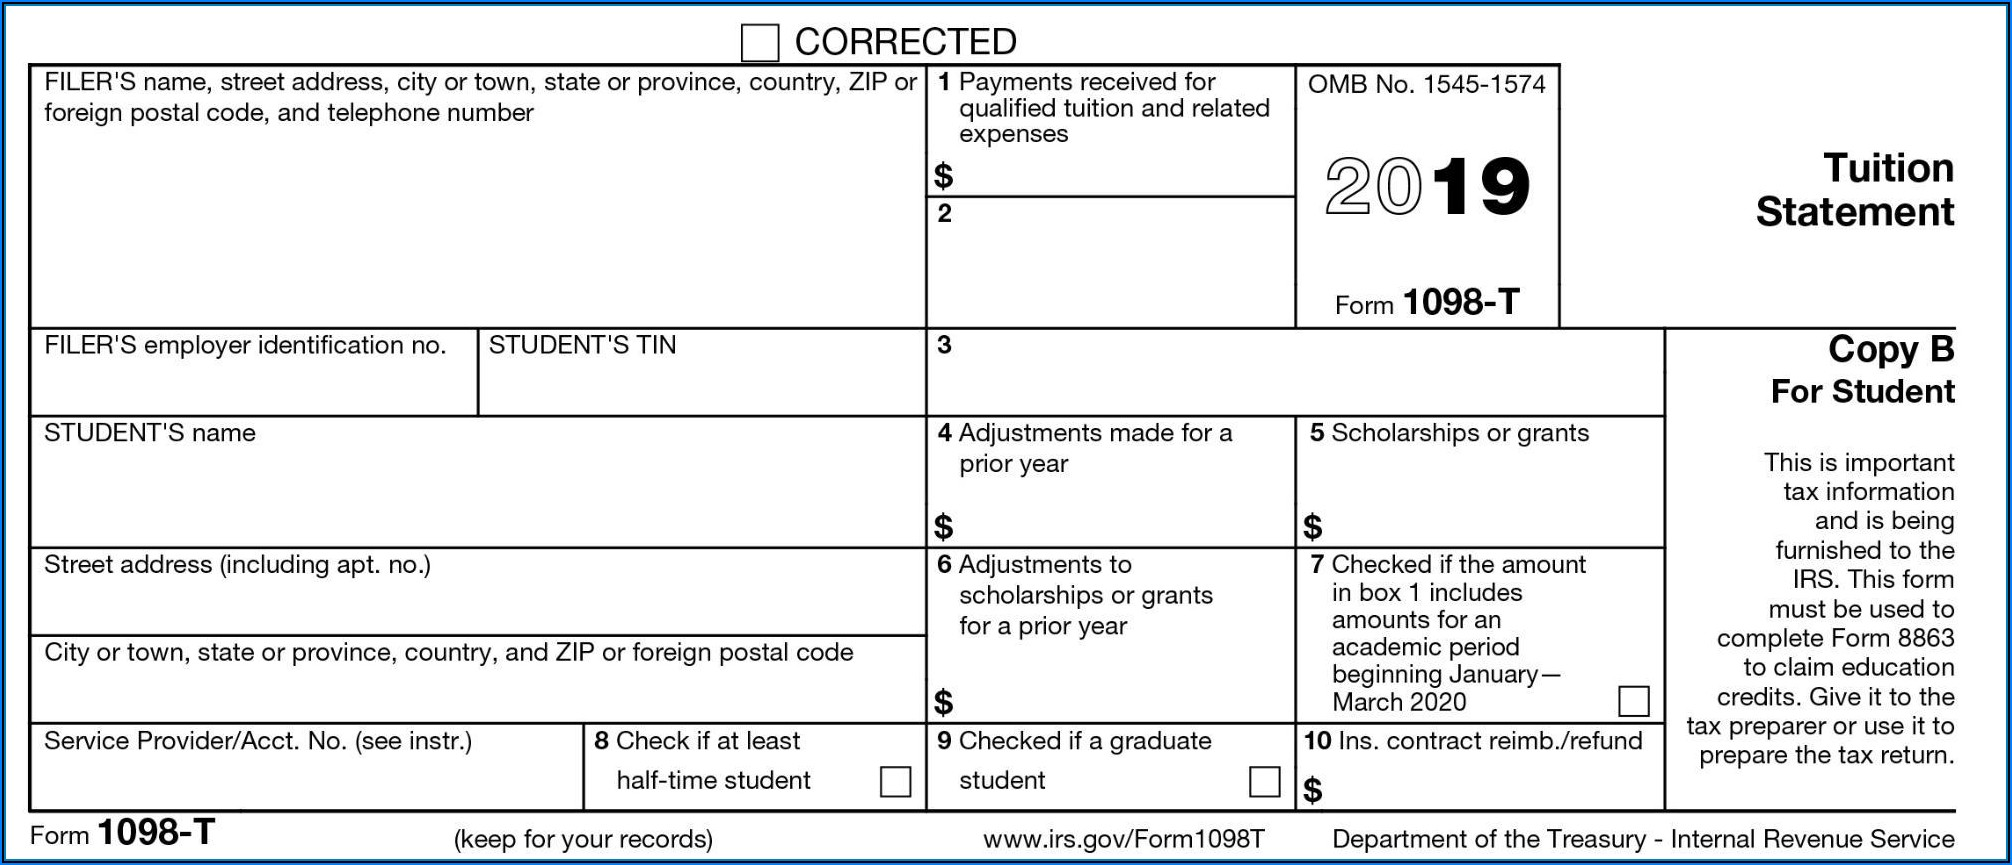 Blank 1098 T Form 2019